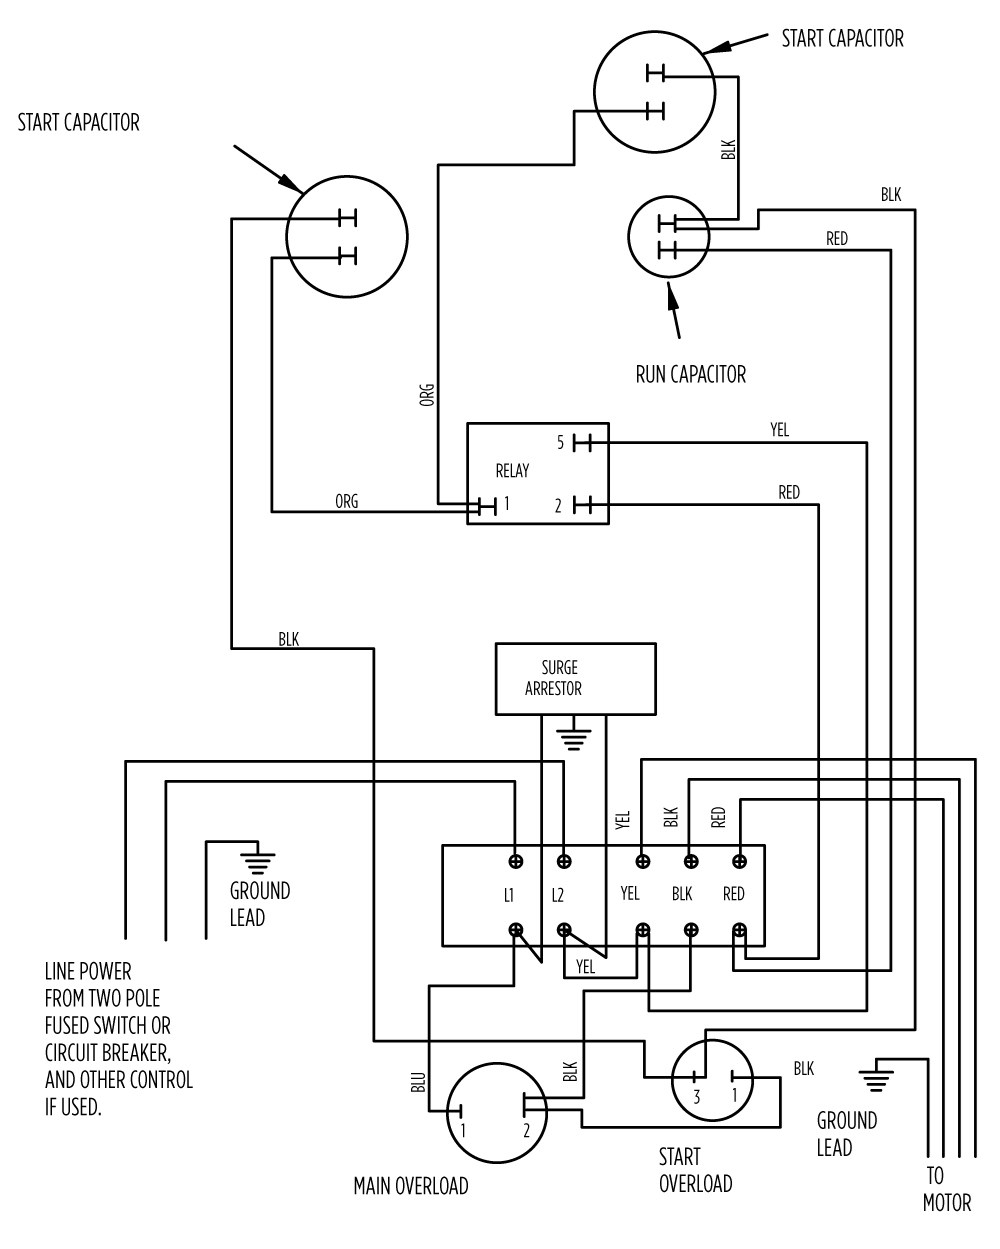 75 hp standard 282 201 9210_aim gallery?format=jpg&quality=80 aim manual page 56 single phase motors and controls motor franklin control box wiring diagram at suagrazia.org